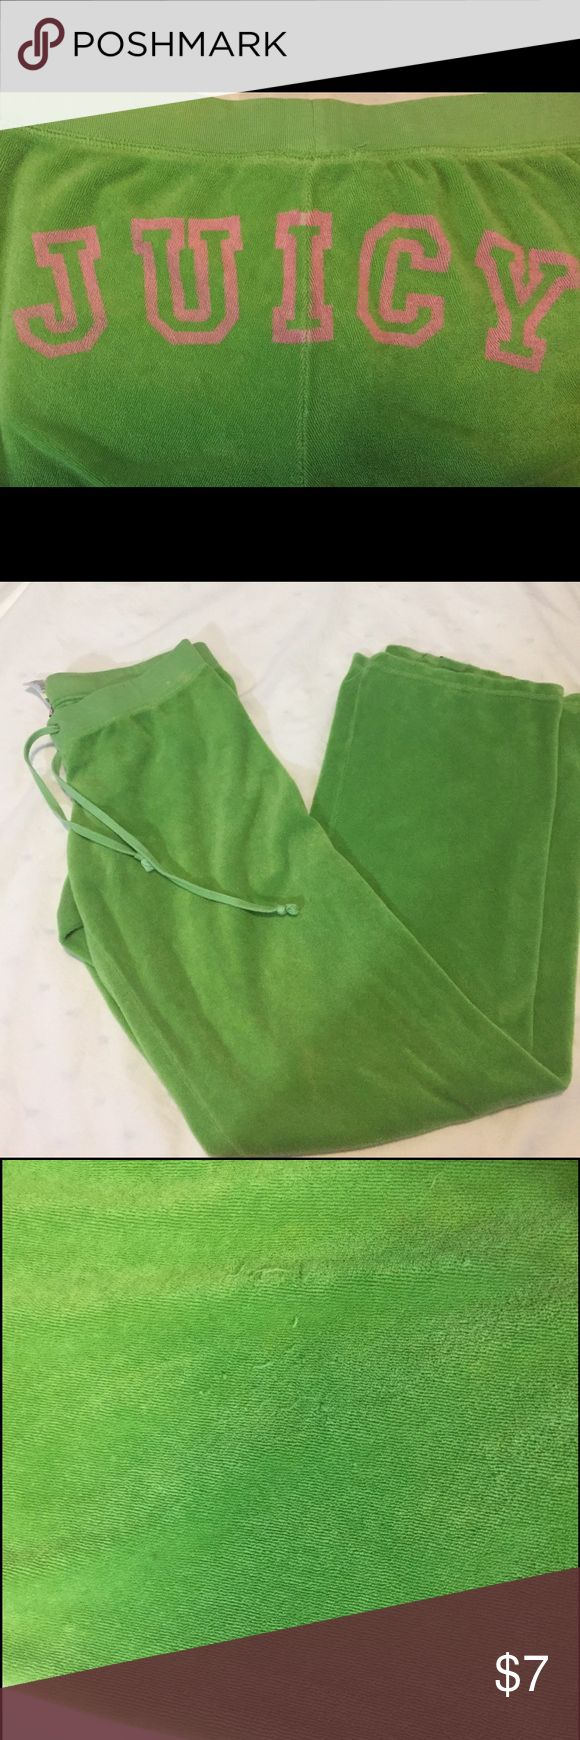 JUICY COUTURE Lime green velour track pants Super comfy JUICY track pants. Some light wear (see pics). Size Small Juicy Couture Pants Track Pants & Joggers